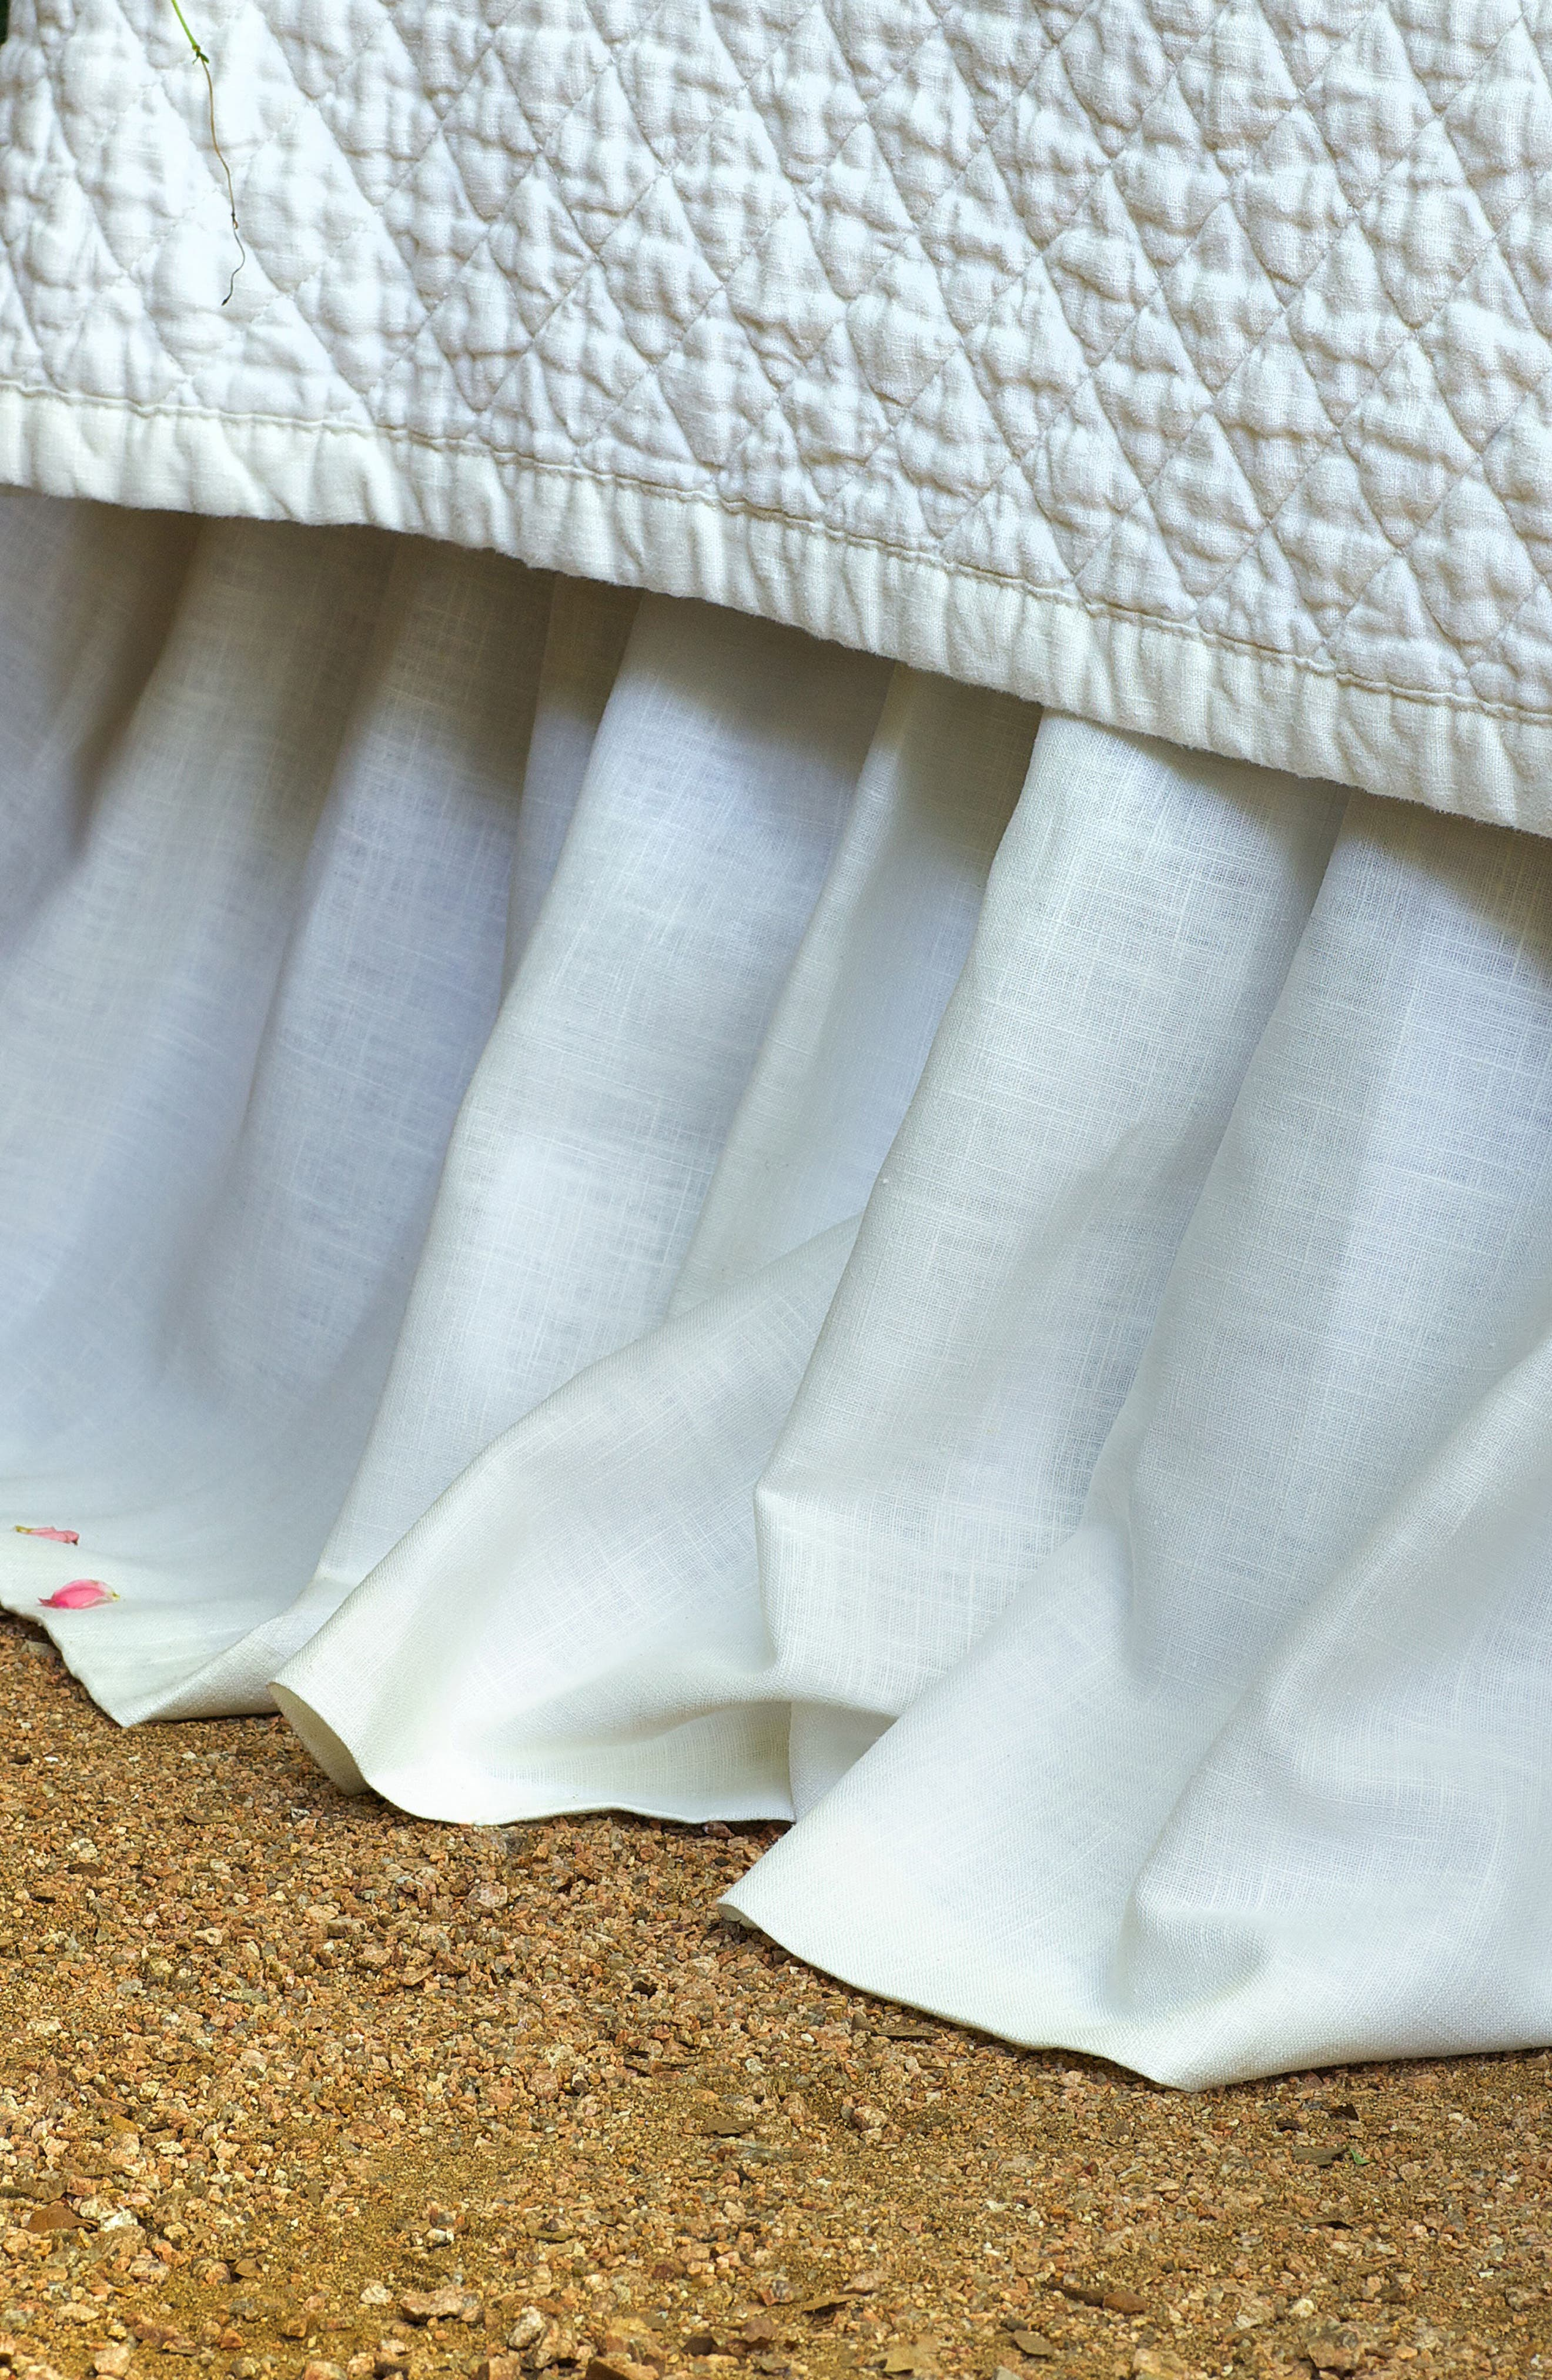 Alternate Image 1 Selected - Lili Alessandra Emily Gathered Linen Bed Skirt